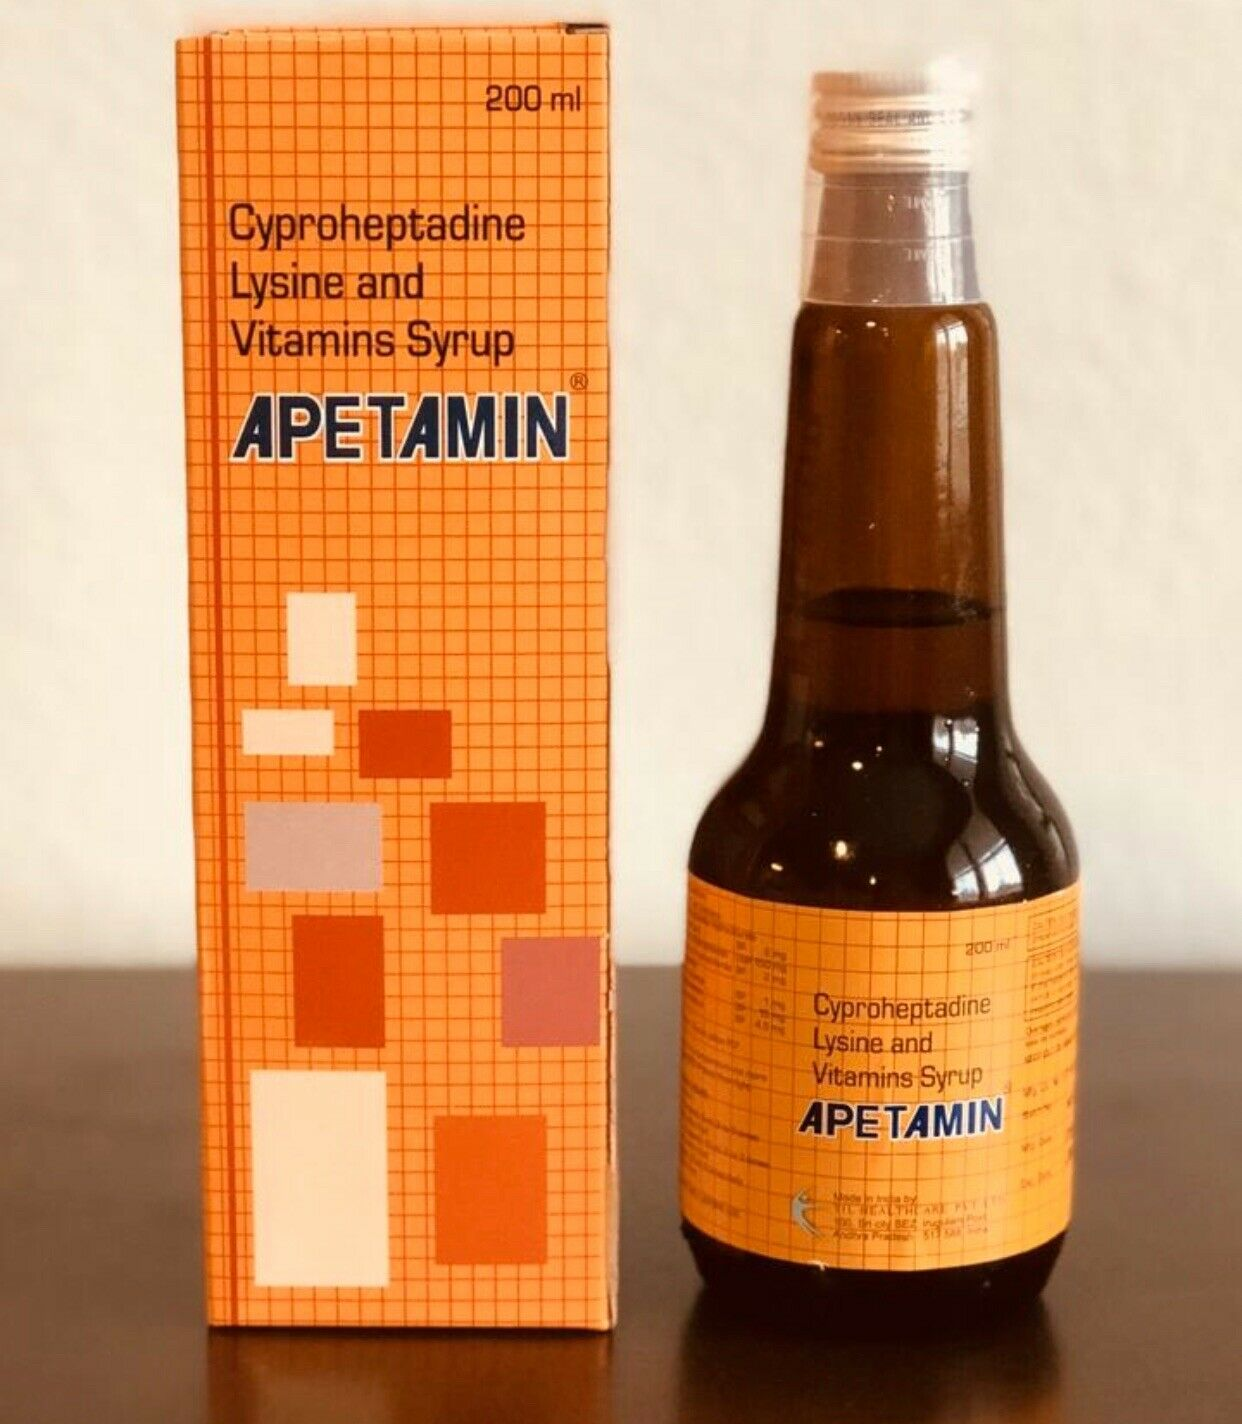 Apetamin Vitamin Weight Gain Appetite Syrup 200 ml Bottle 1 PACK